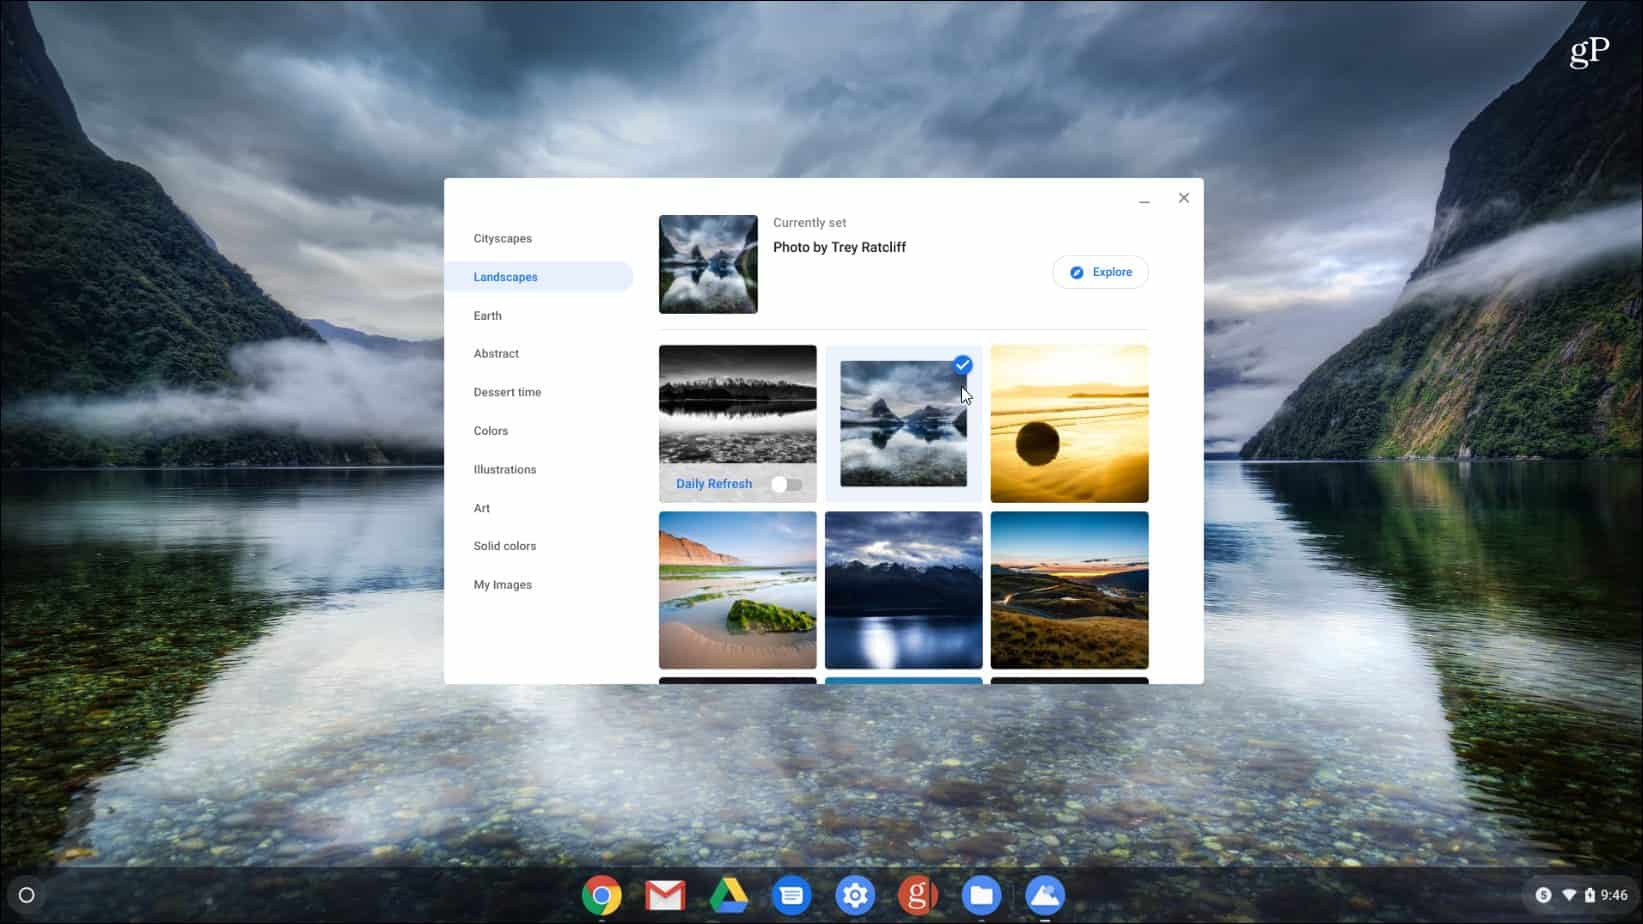 How to Change the Desktop Wallpaper on a Google Chromebook